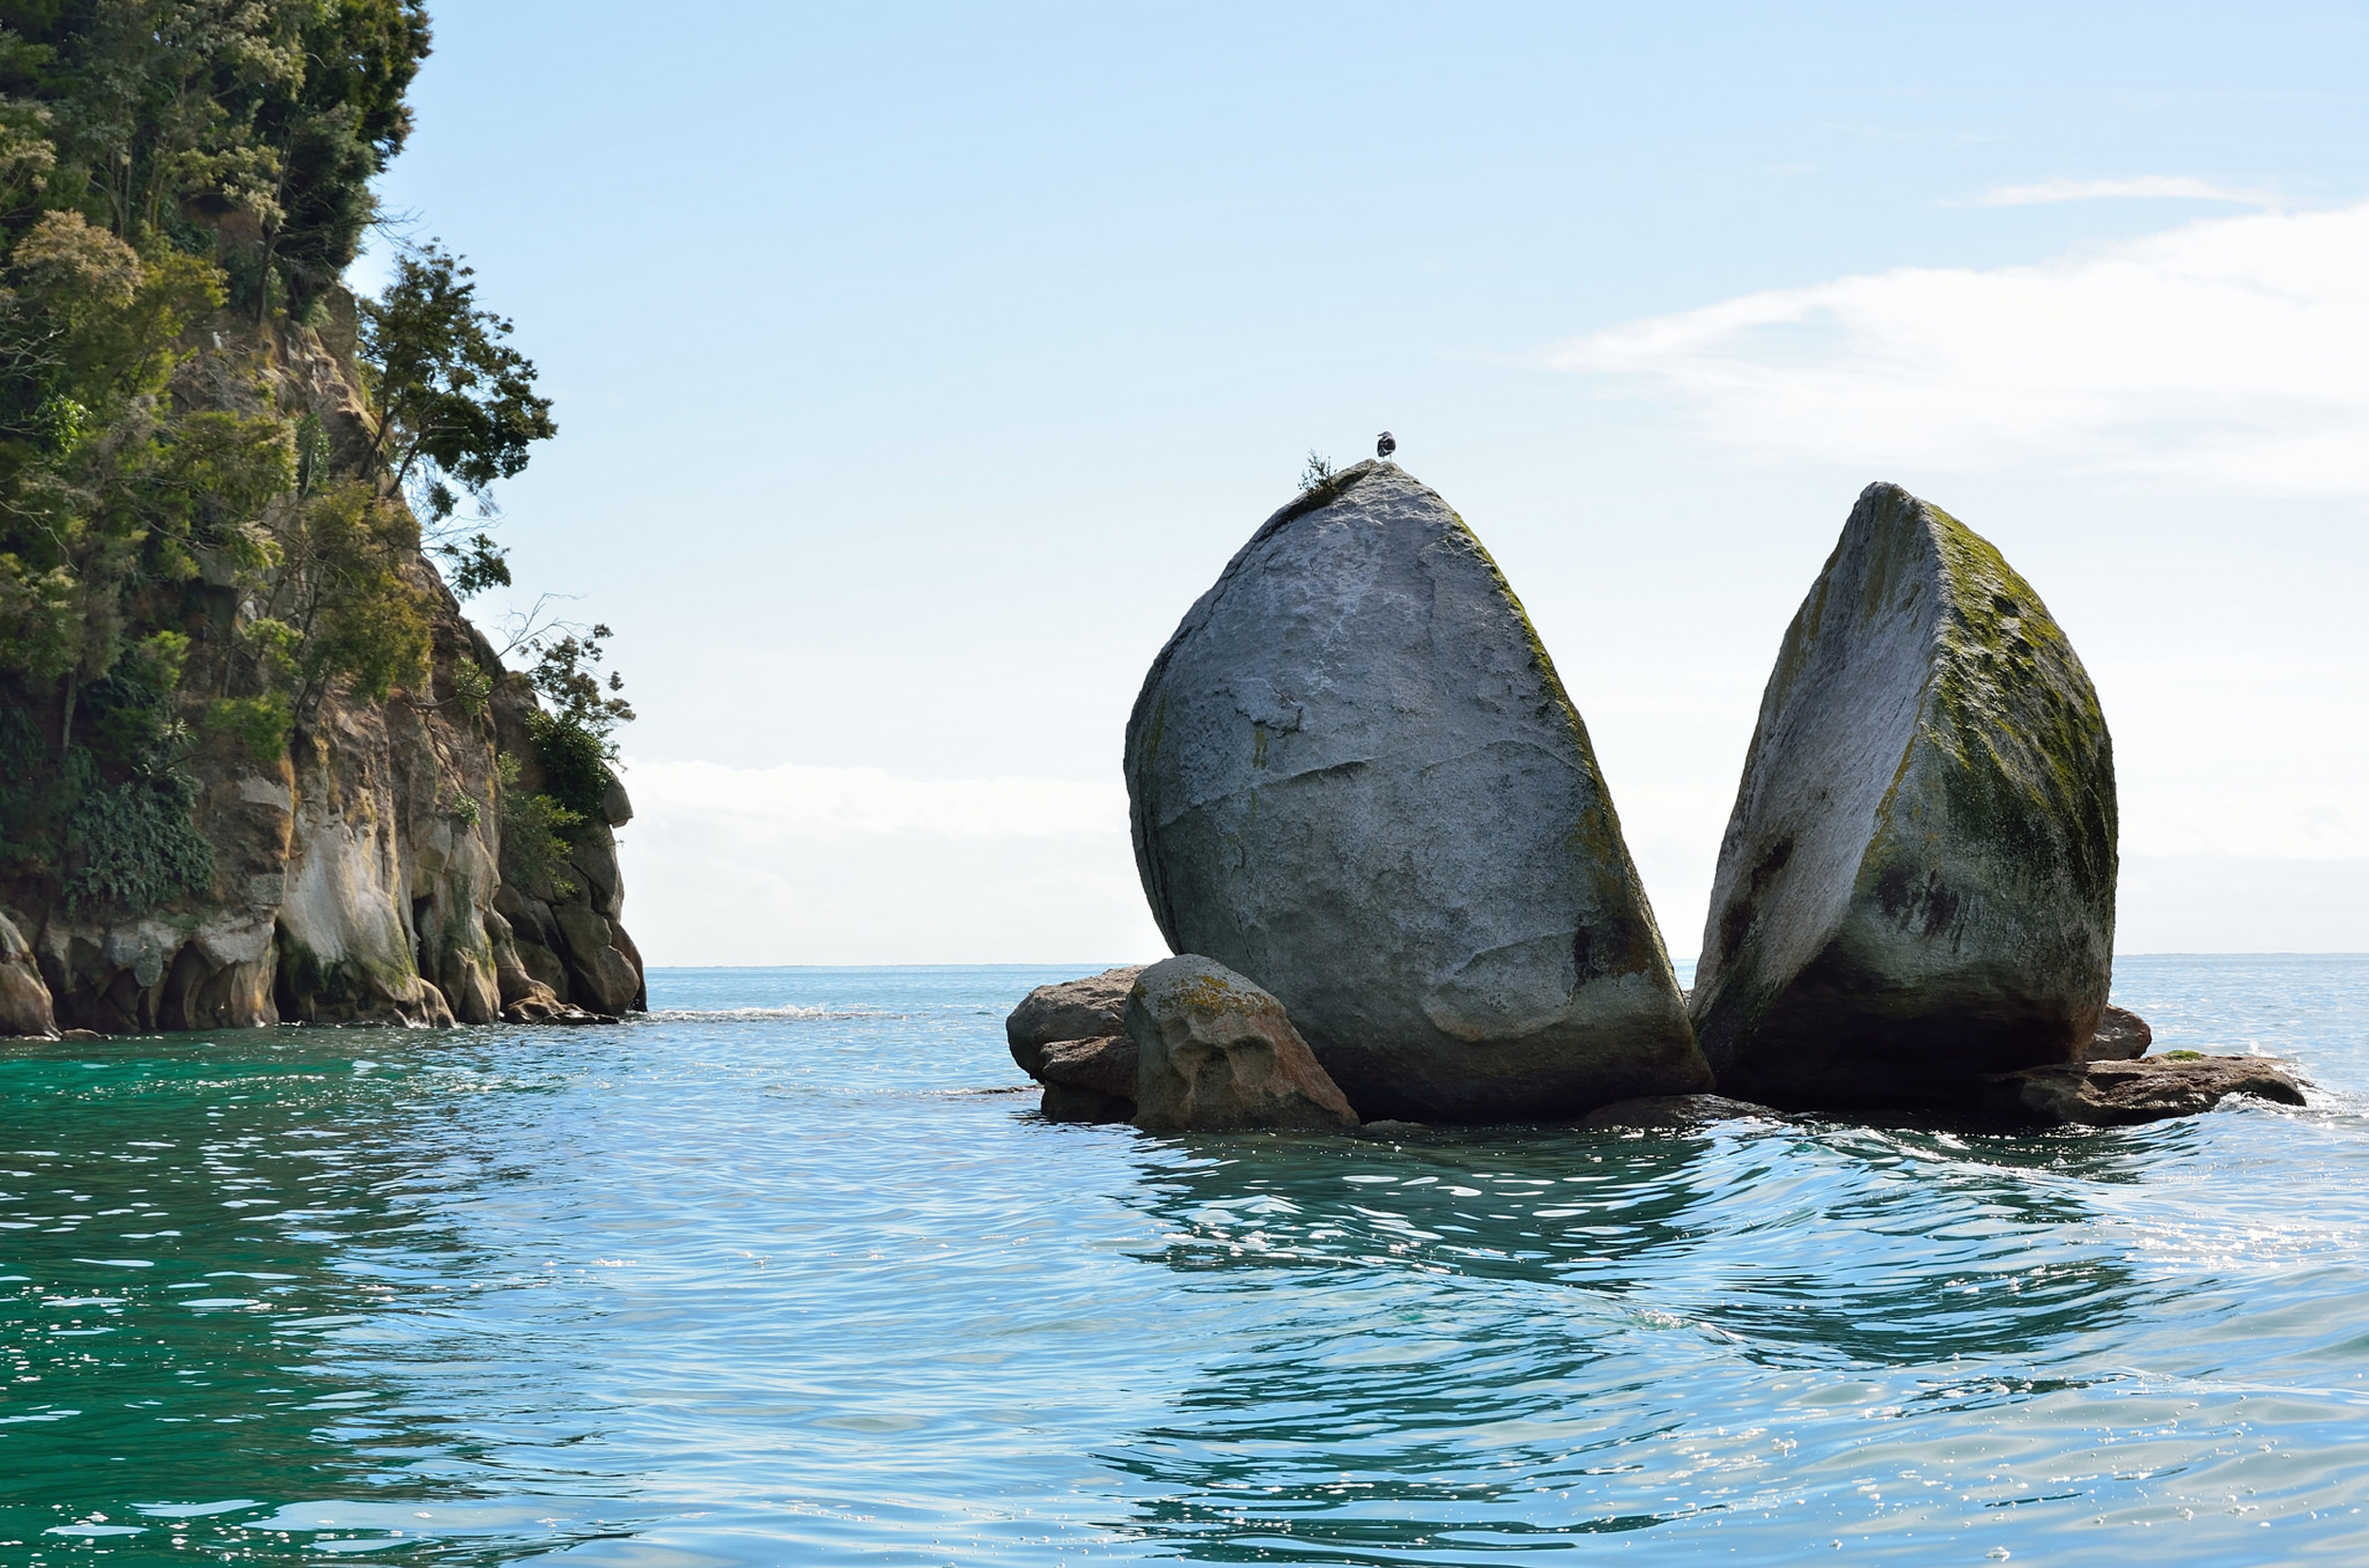 A spherical rock sheared in half an suspended in the waters off Abel Tasman National Park, New Zealand